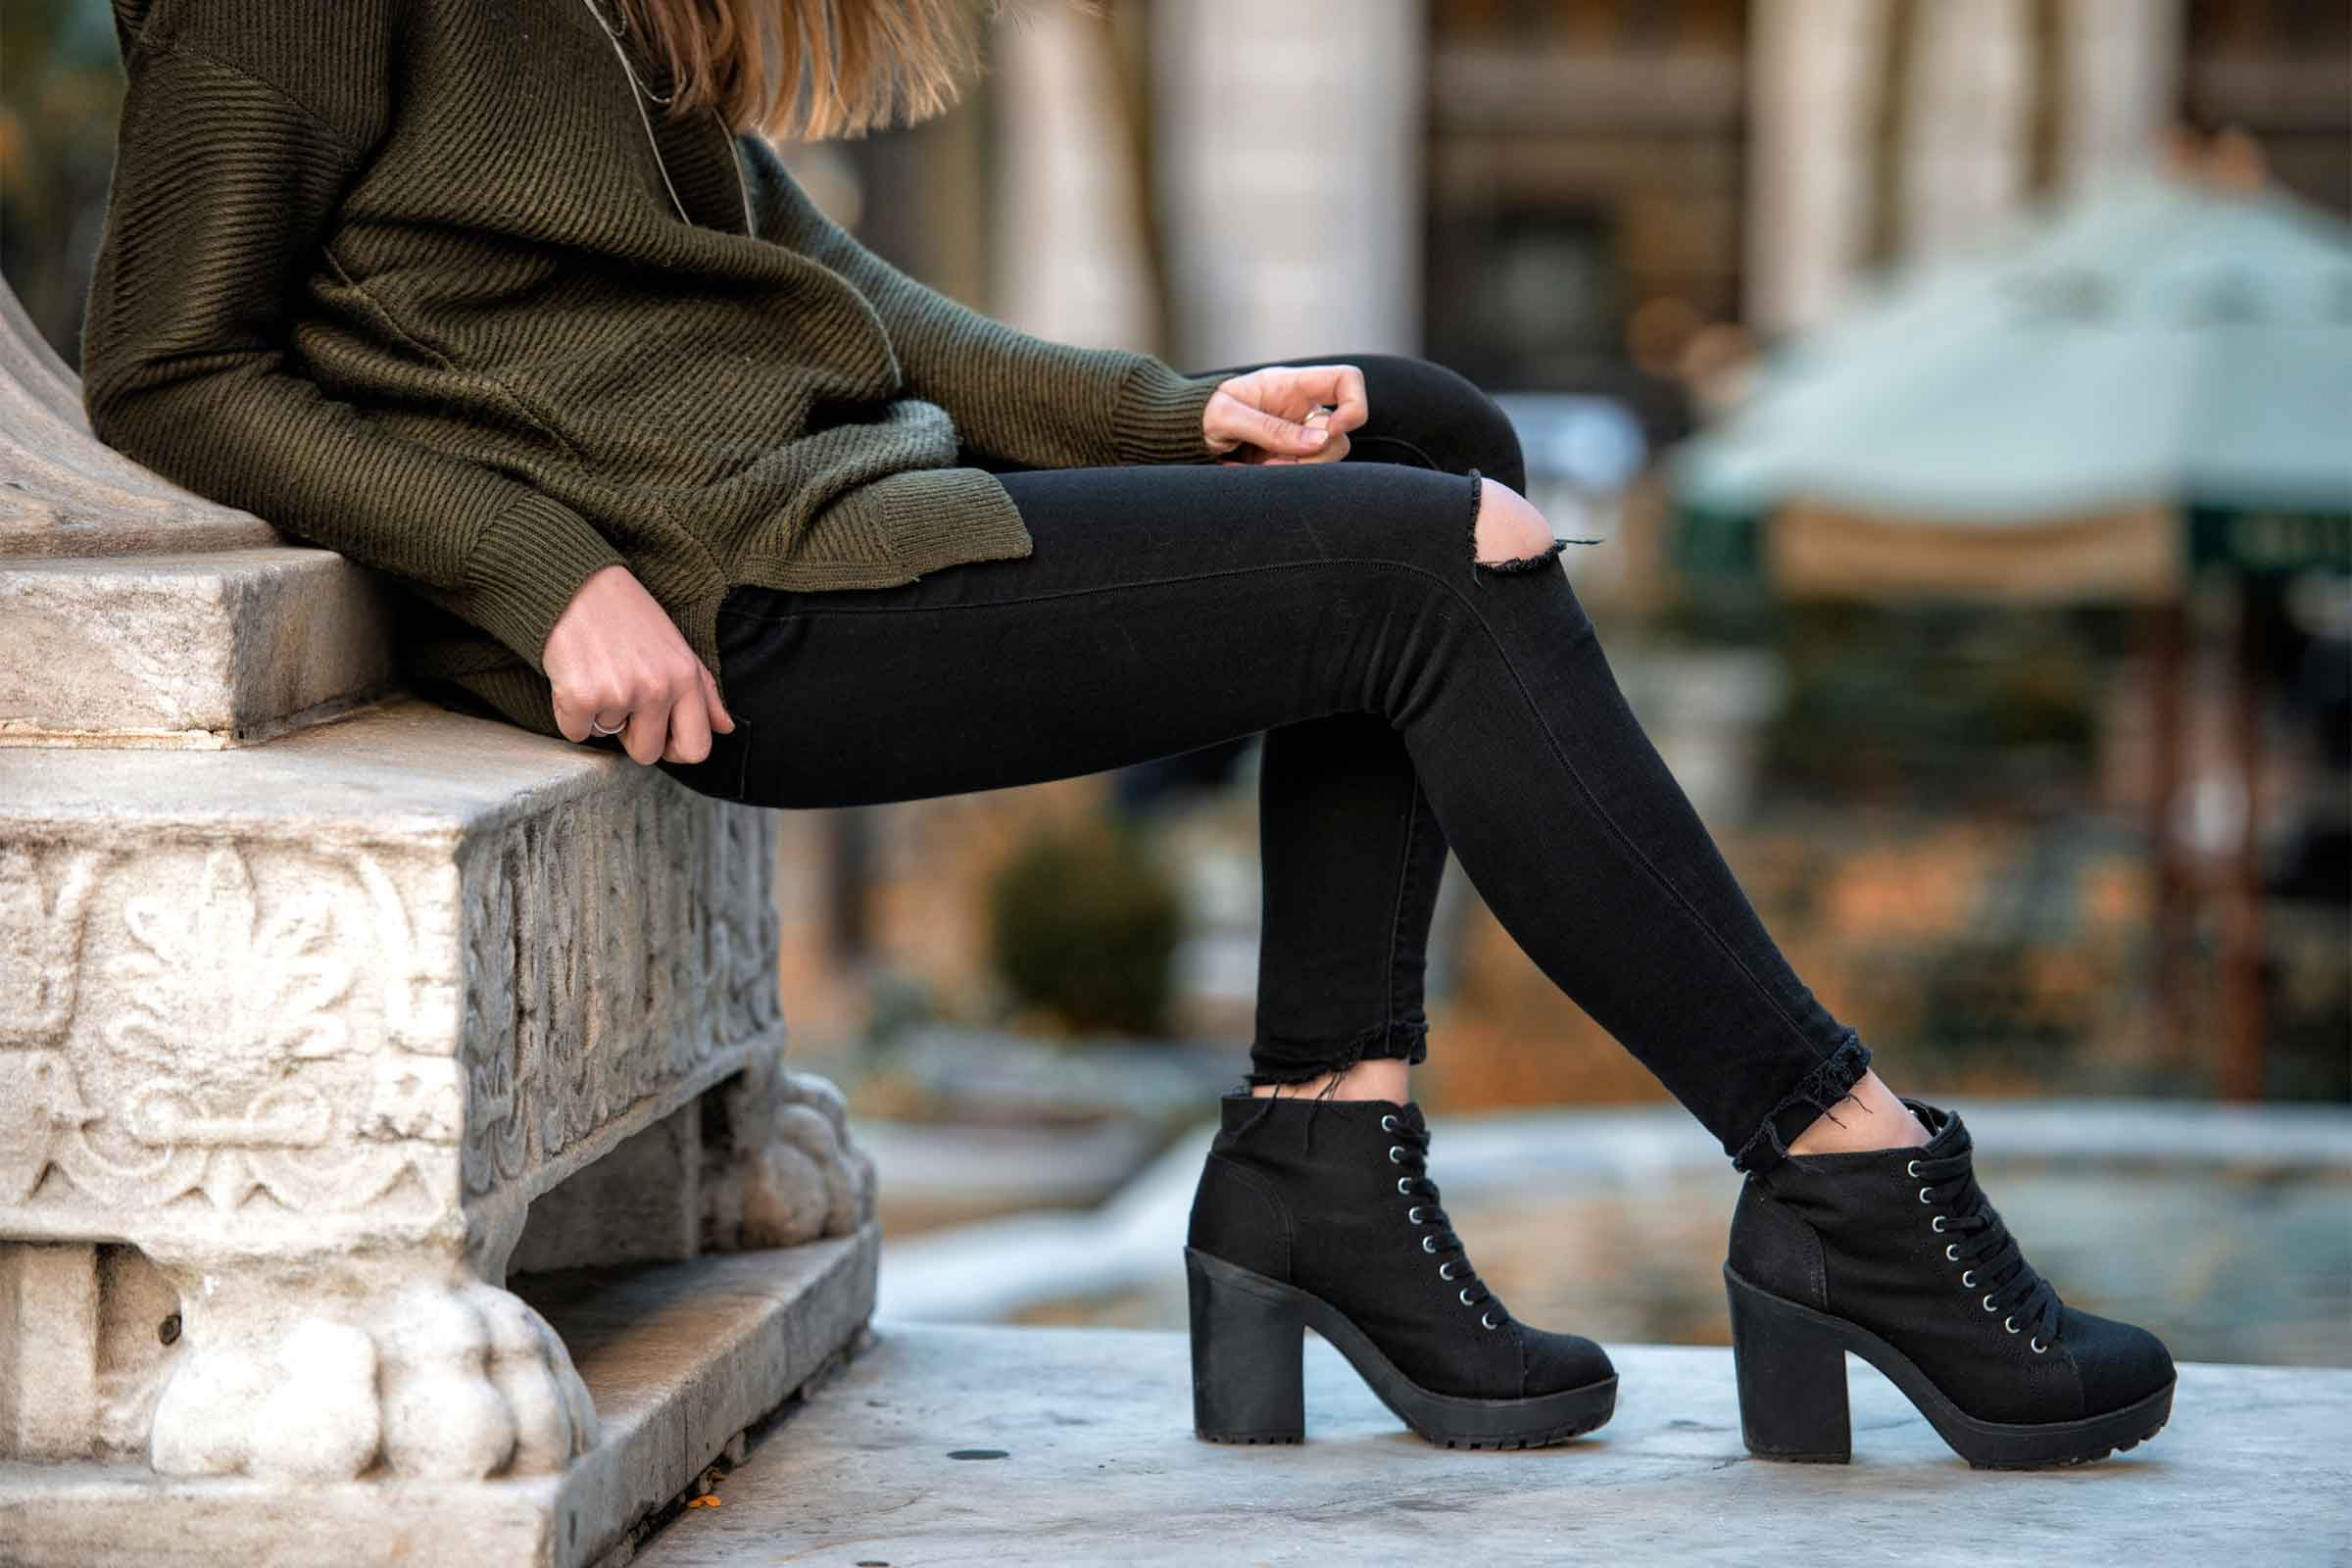 High heels put extra stress on your knees